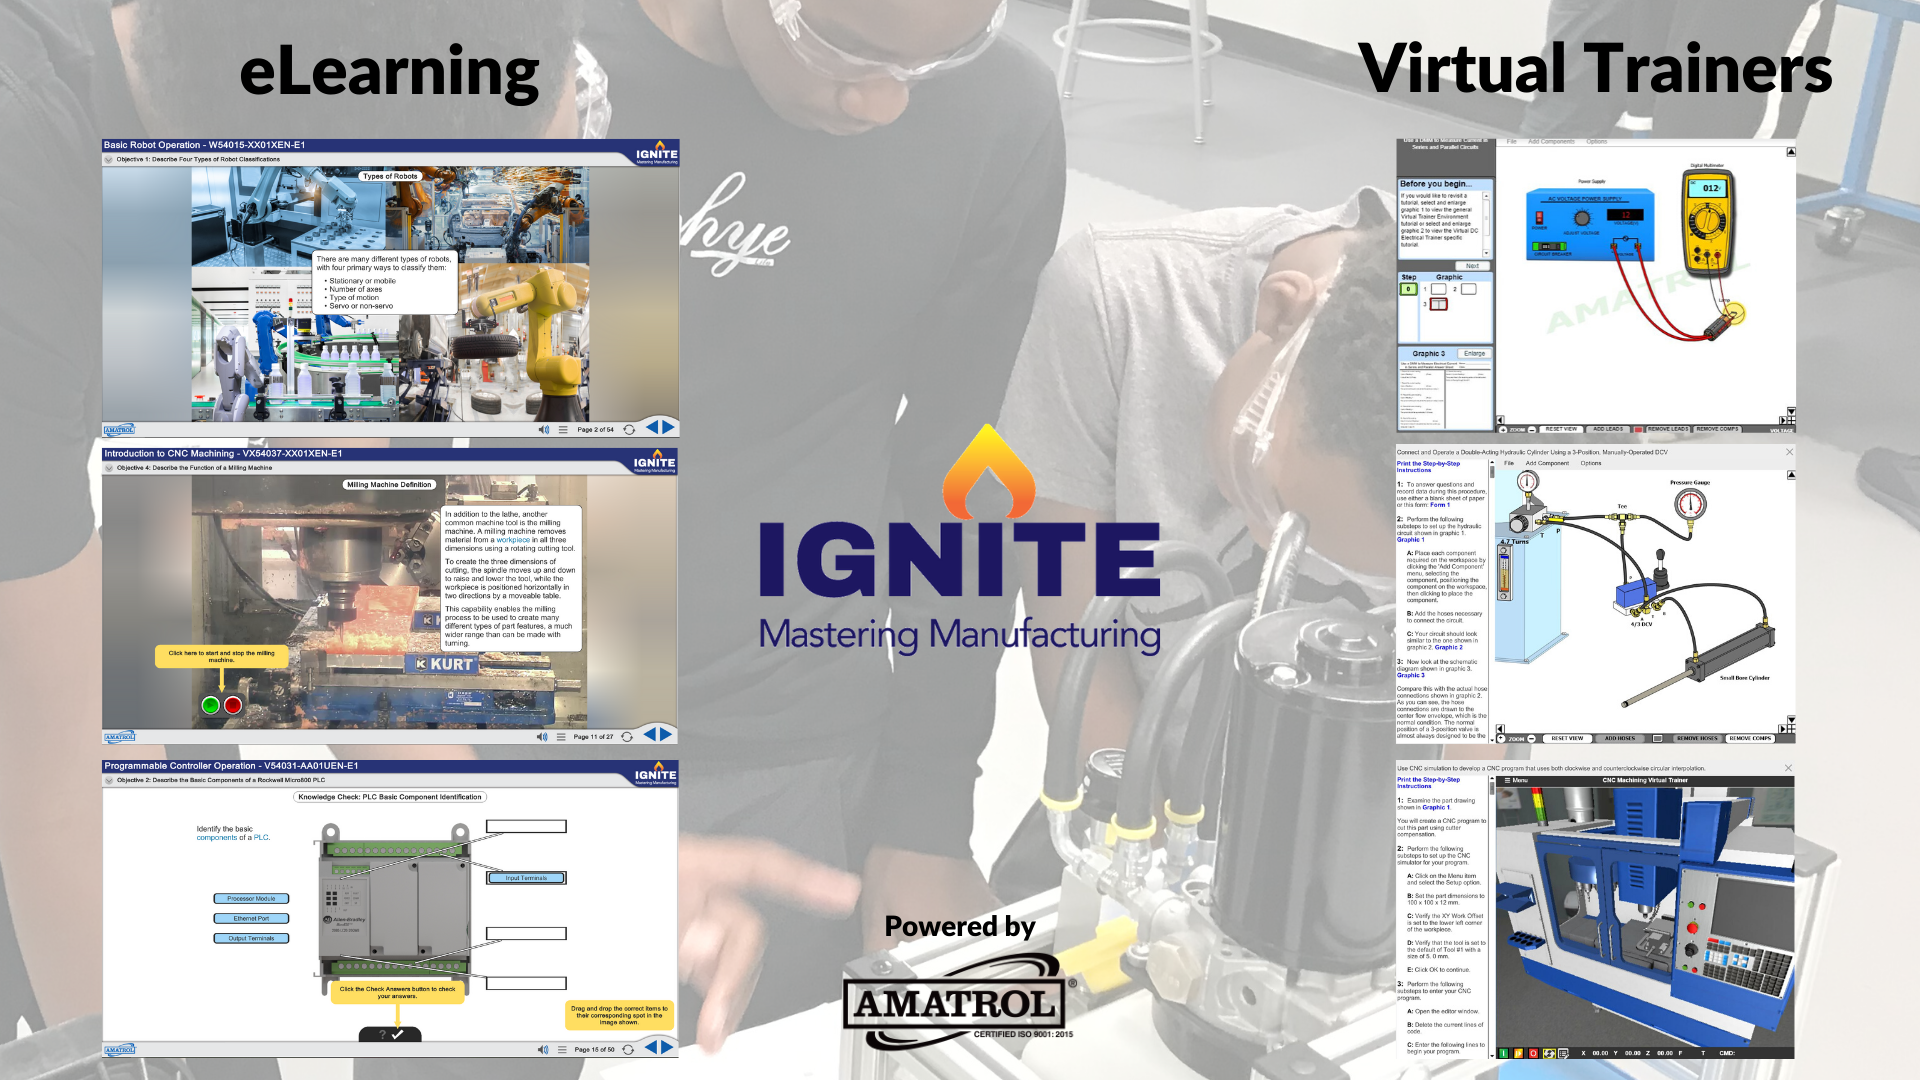 IGNITE Mastering Manufacturing Web Page - eLearning & Virtual Trainers